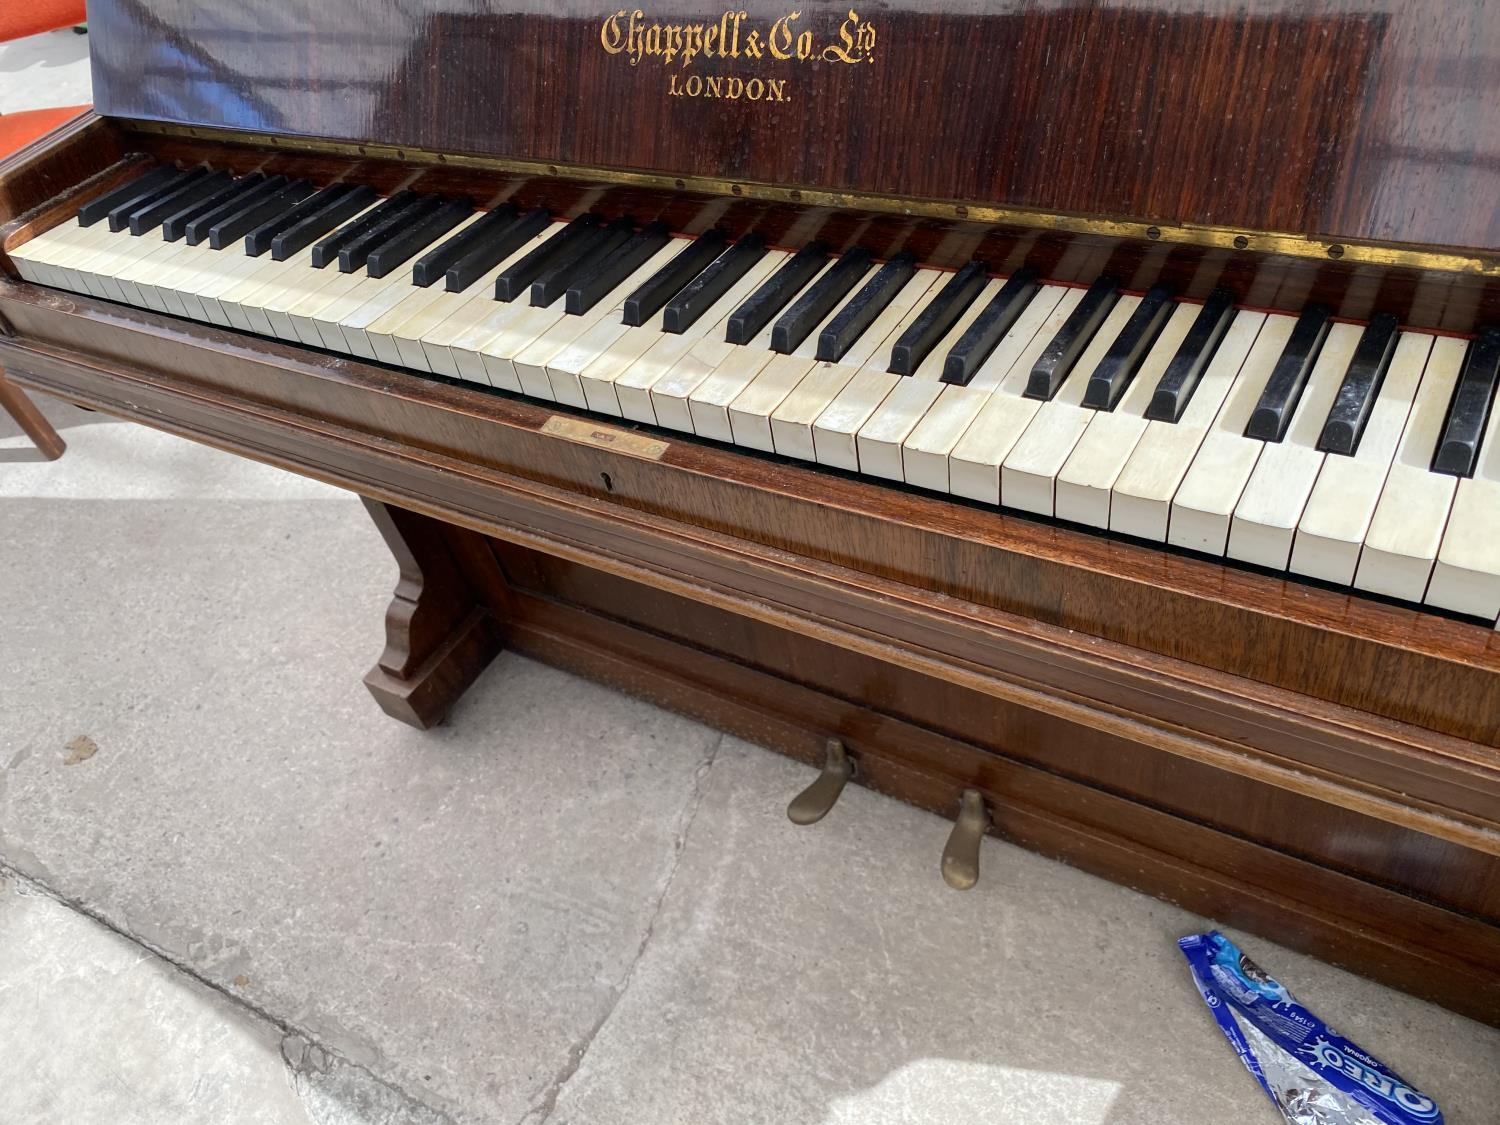 A CHAPPELL & CO LTD UPRIGHT PIANO STAMPED HARTSON & SON, NEWARK - Image 2 of 5